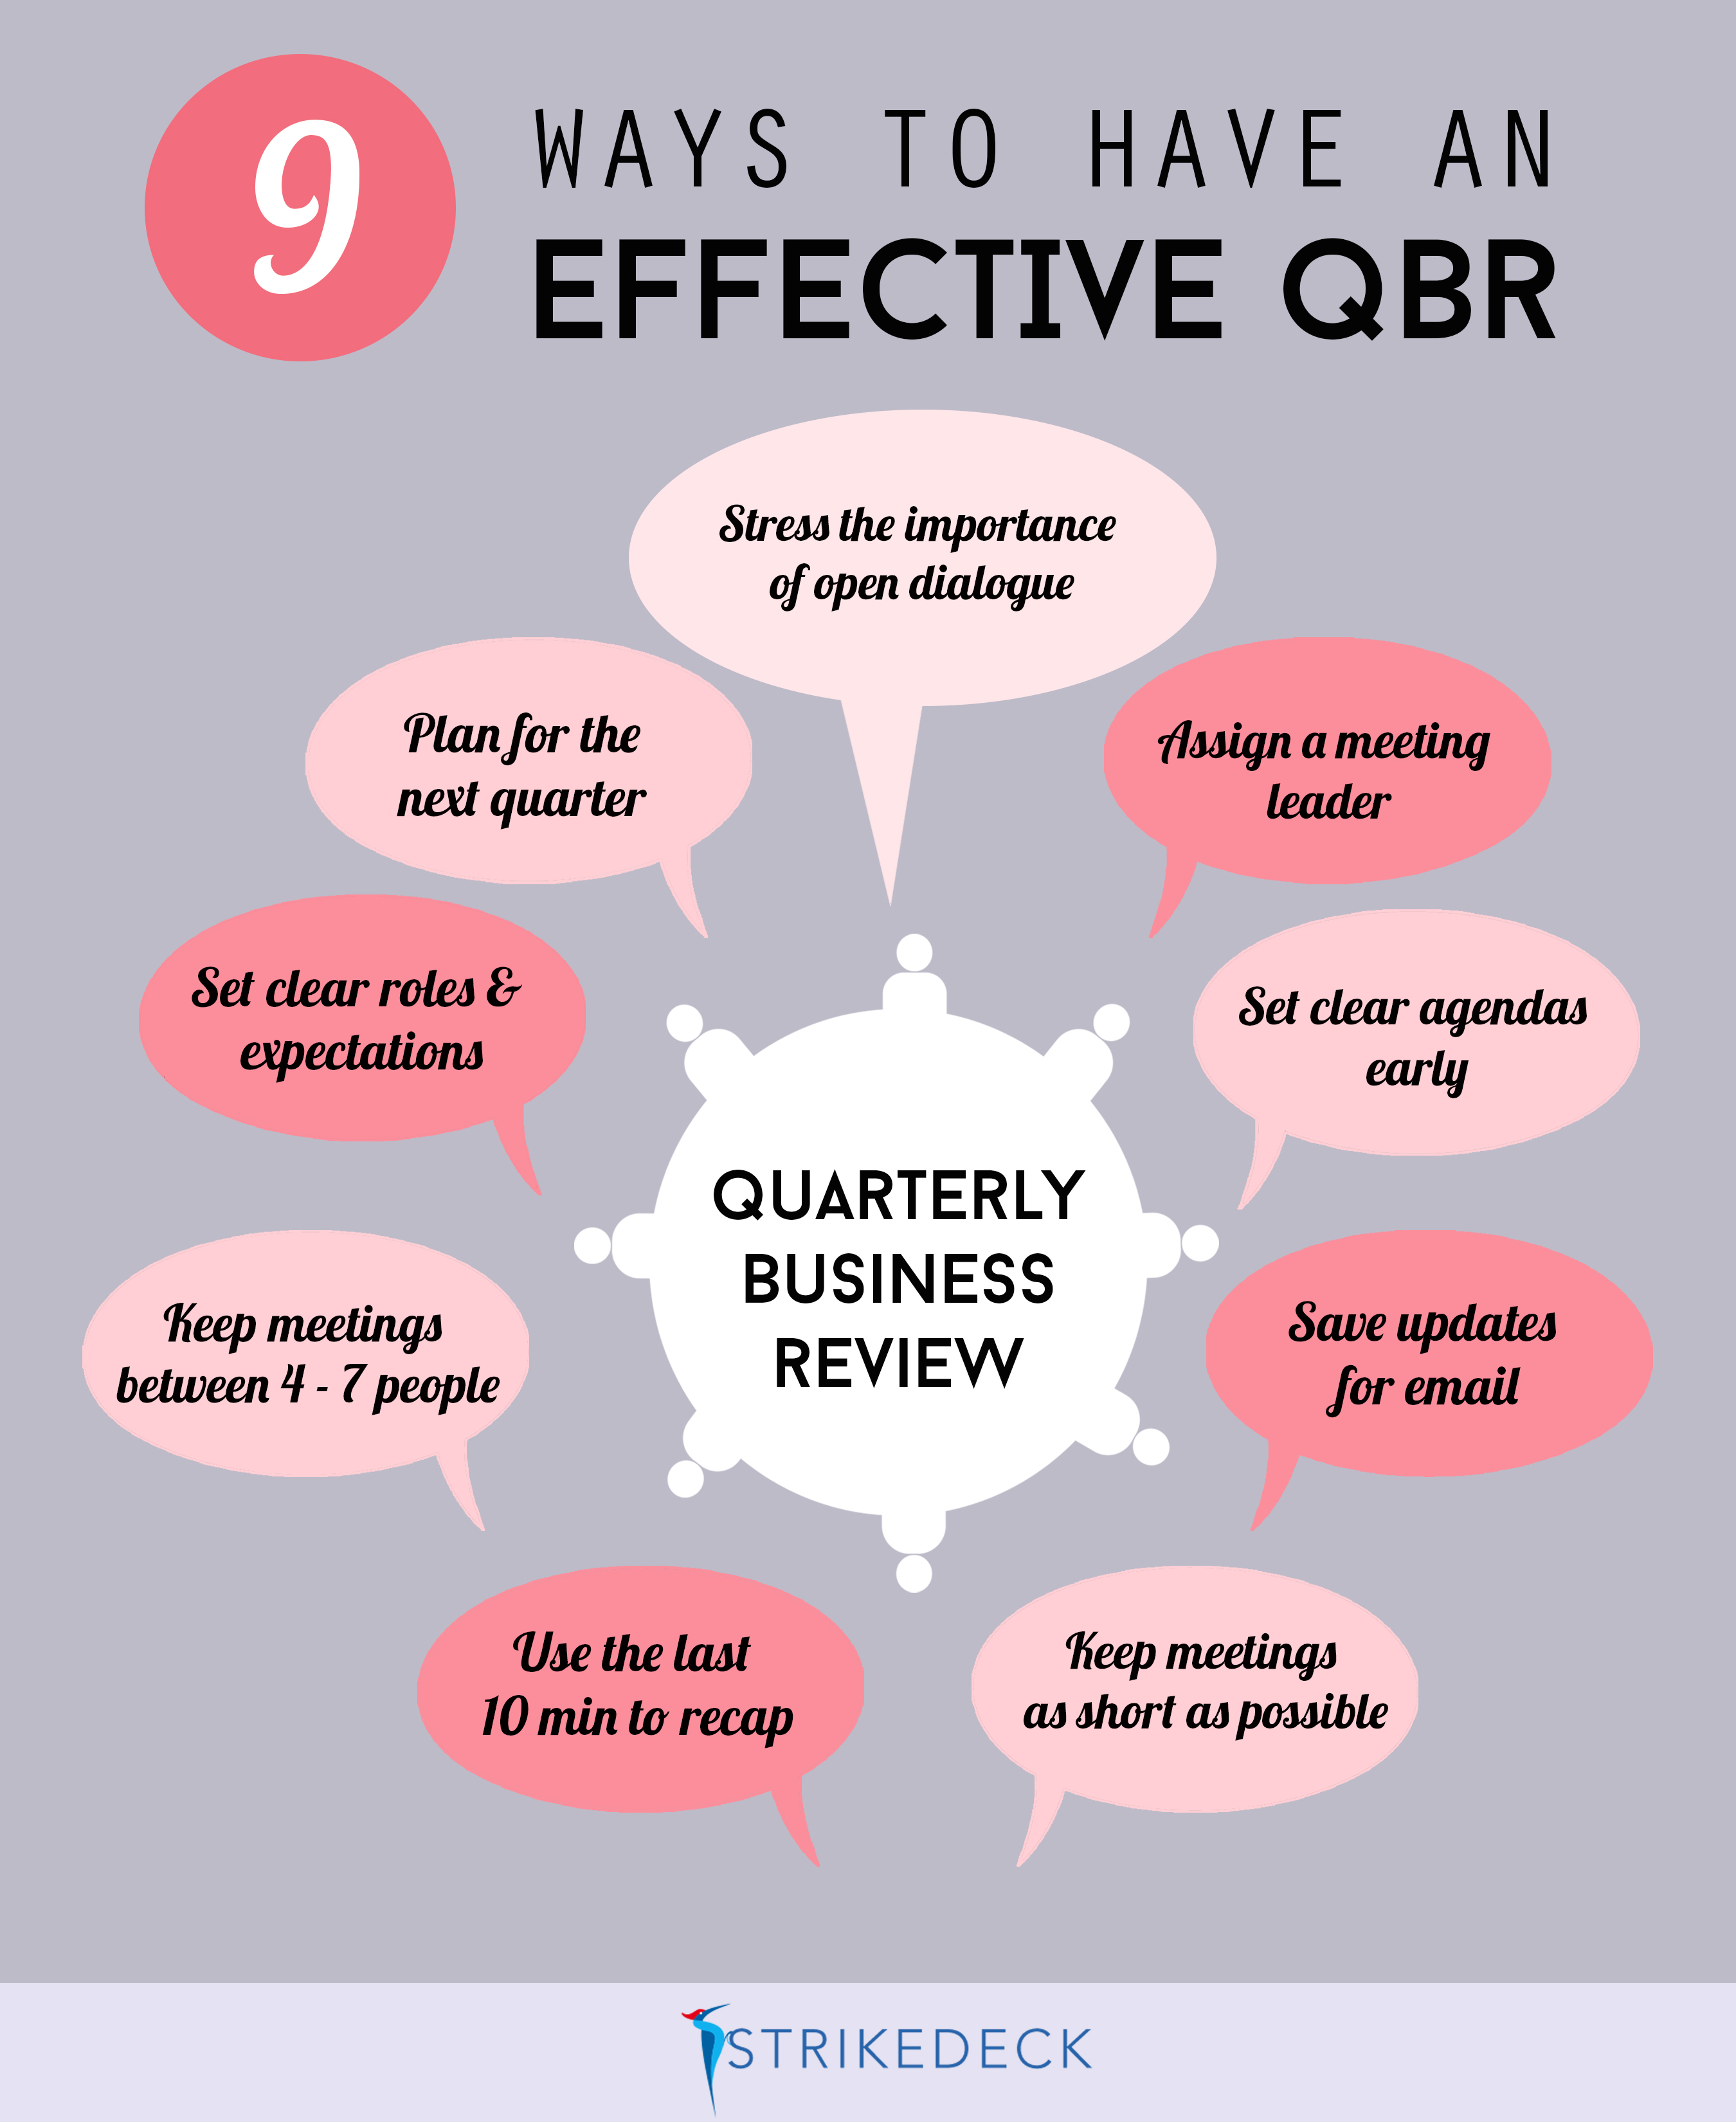 Effective QBR